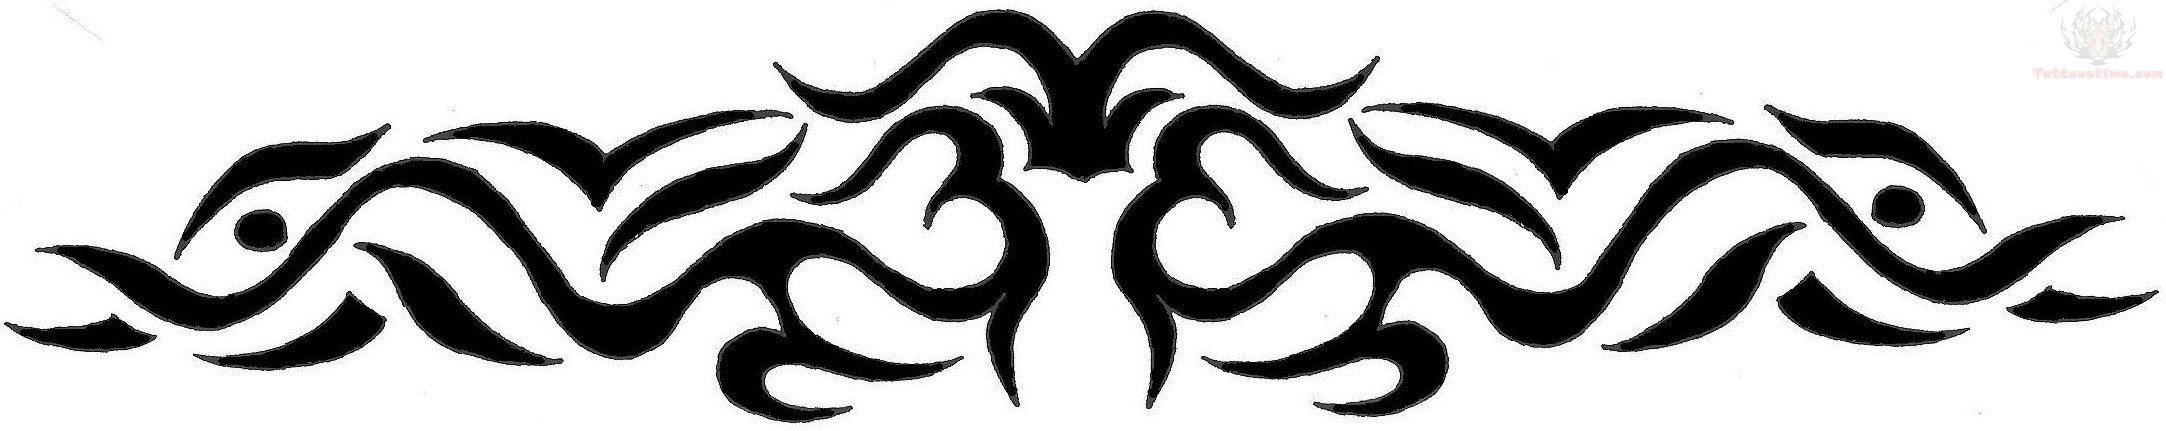 Tribal Flames Back Tattoo Designs